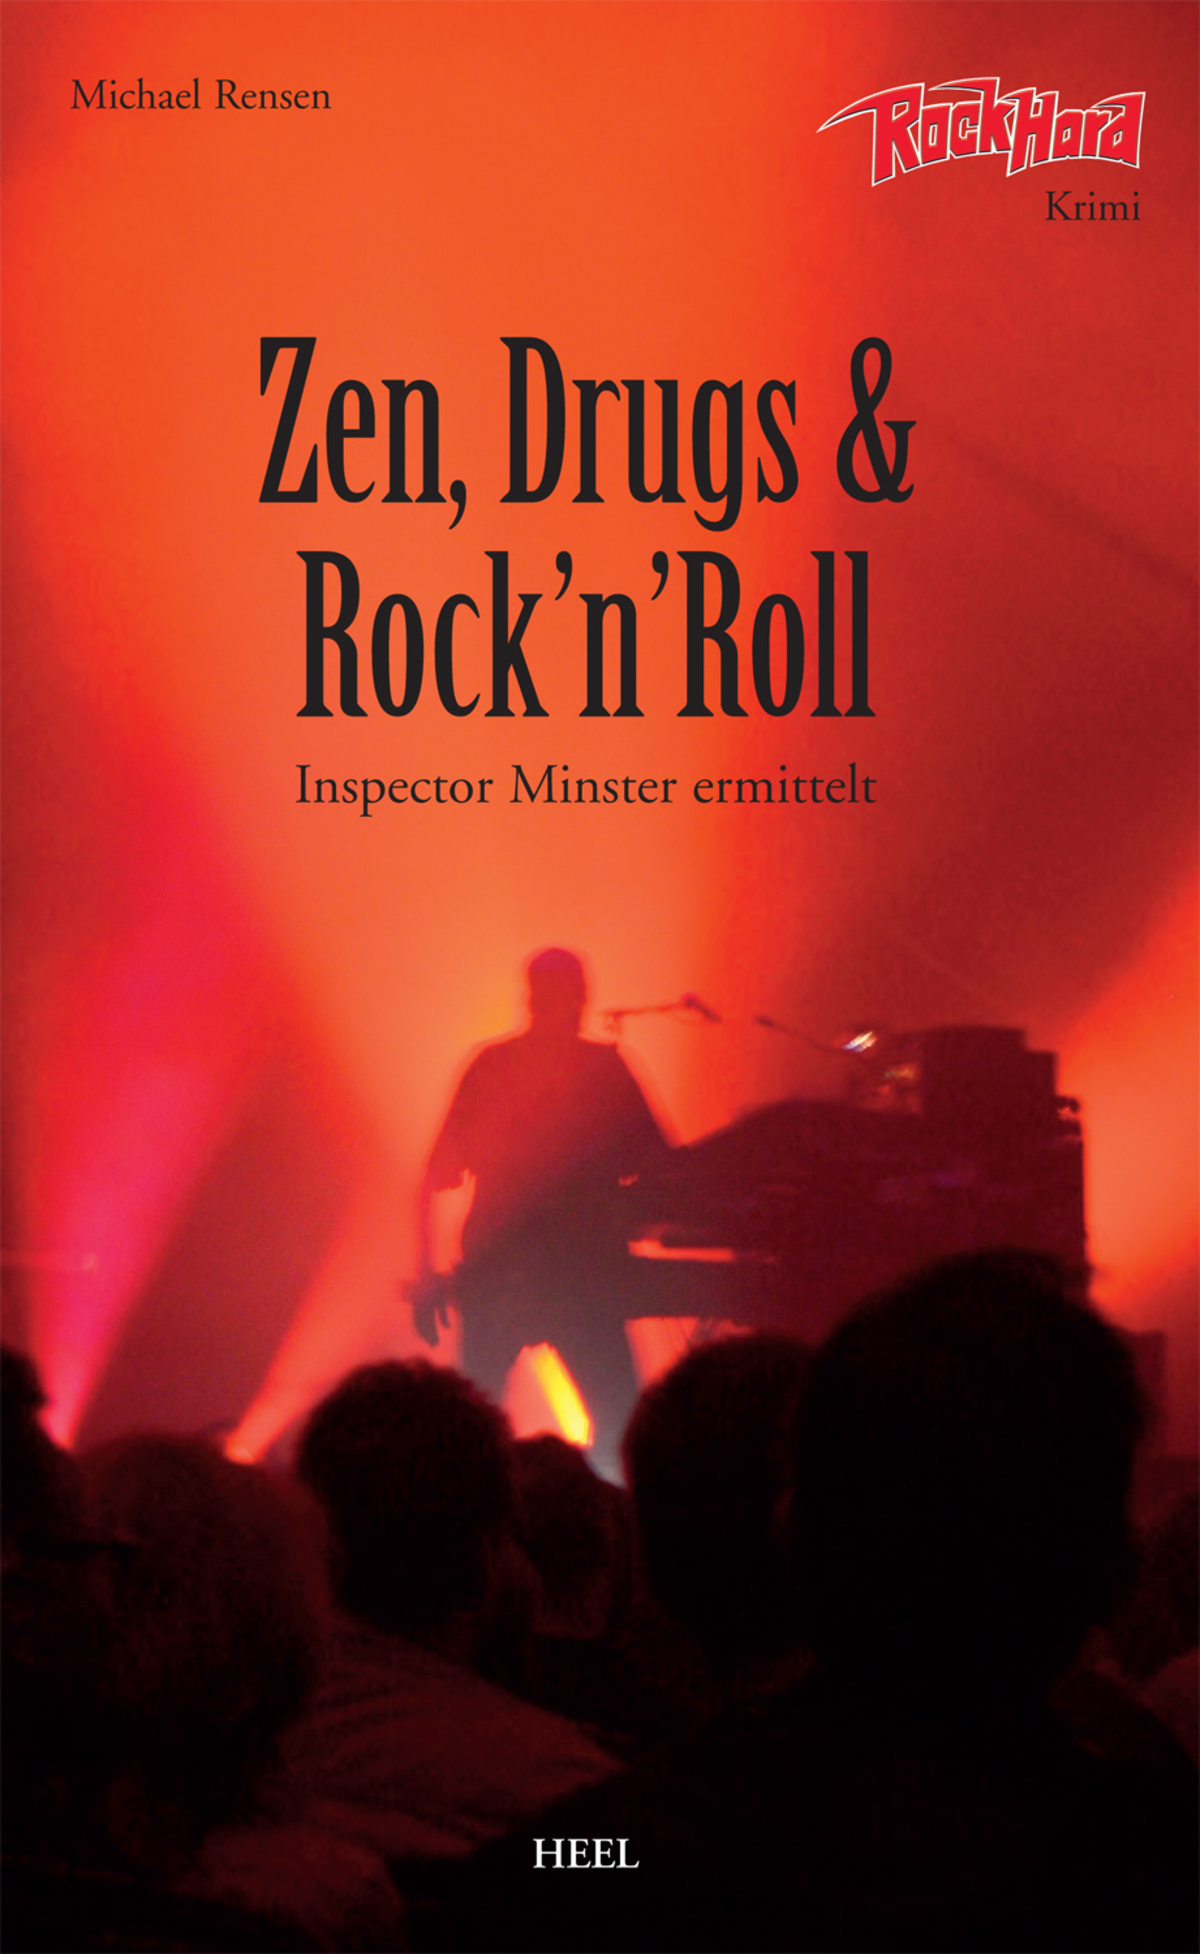 Zen, Drugs & Rock'n'Roll: Inspector Minster ermittelt